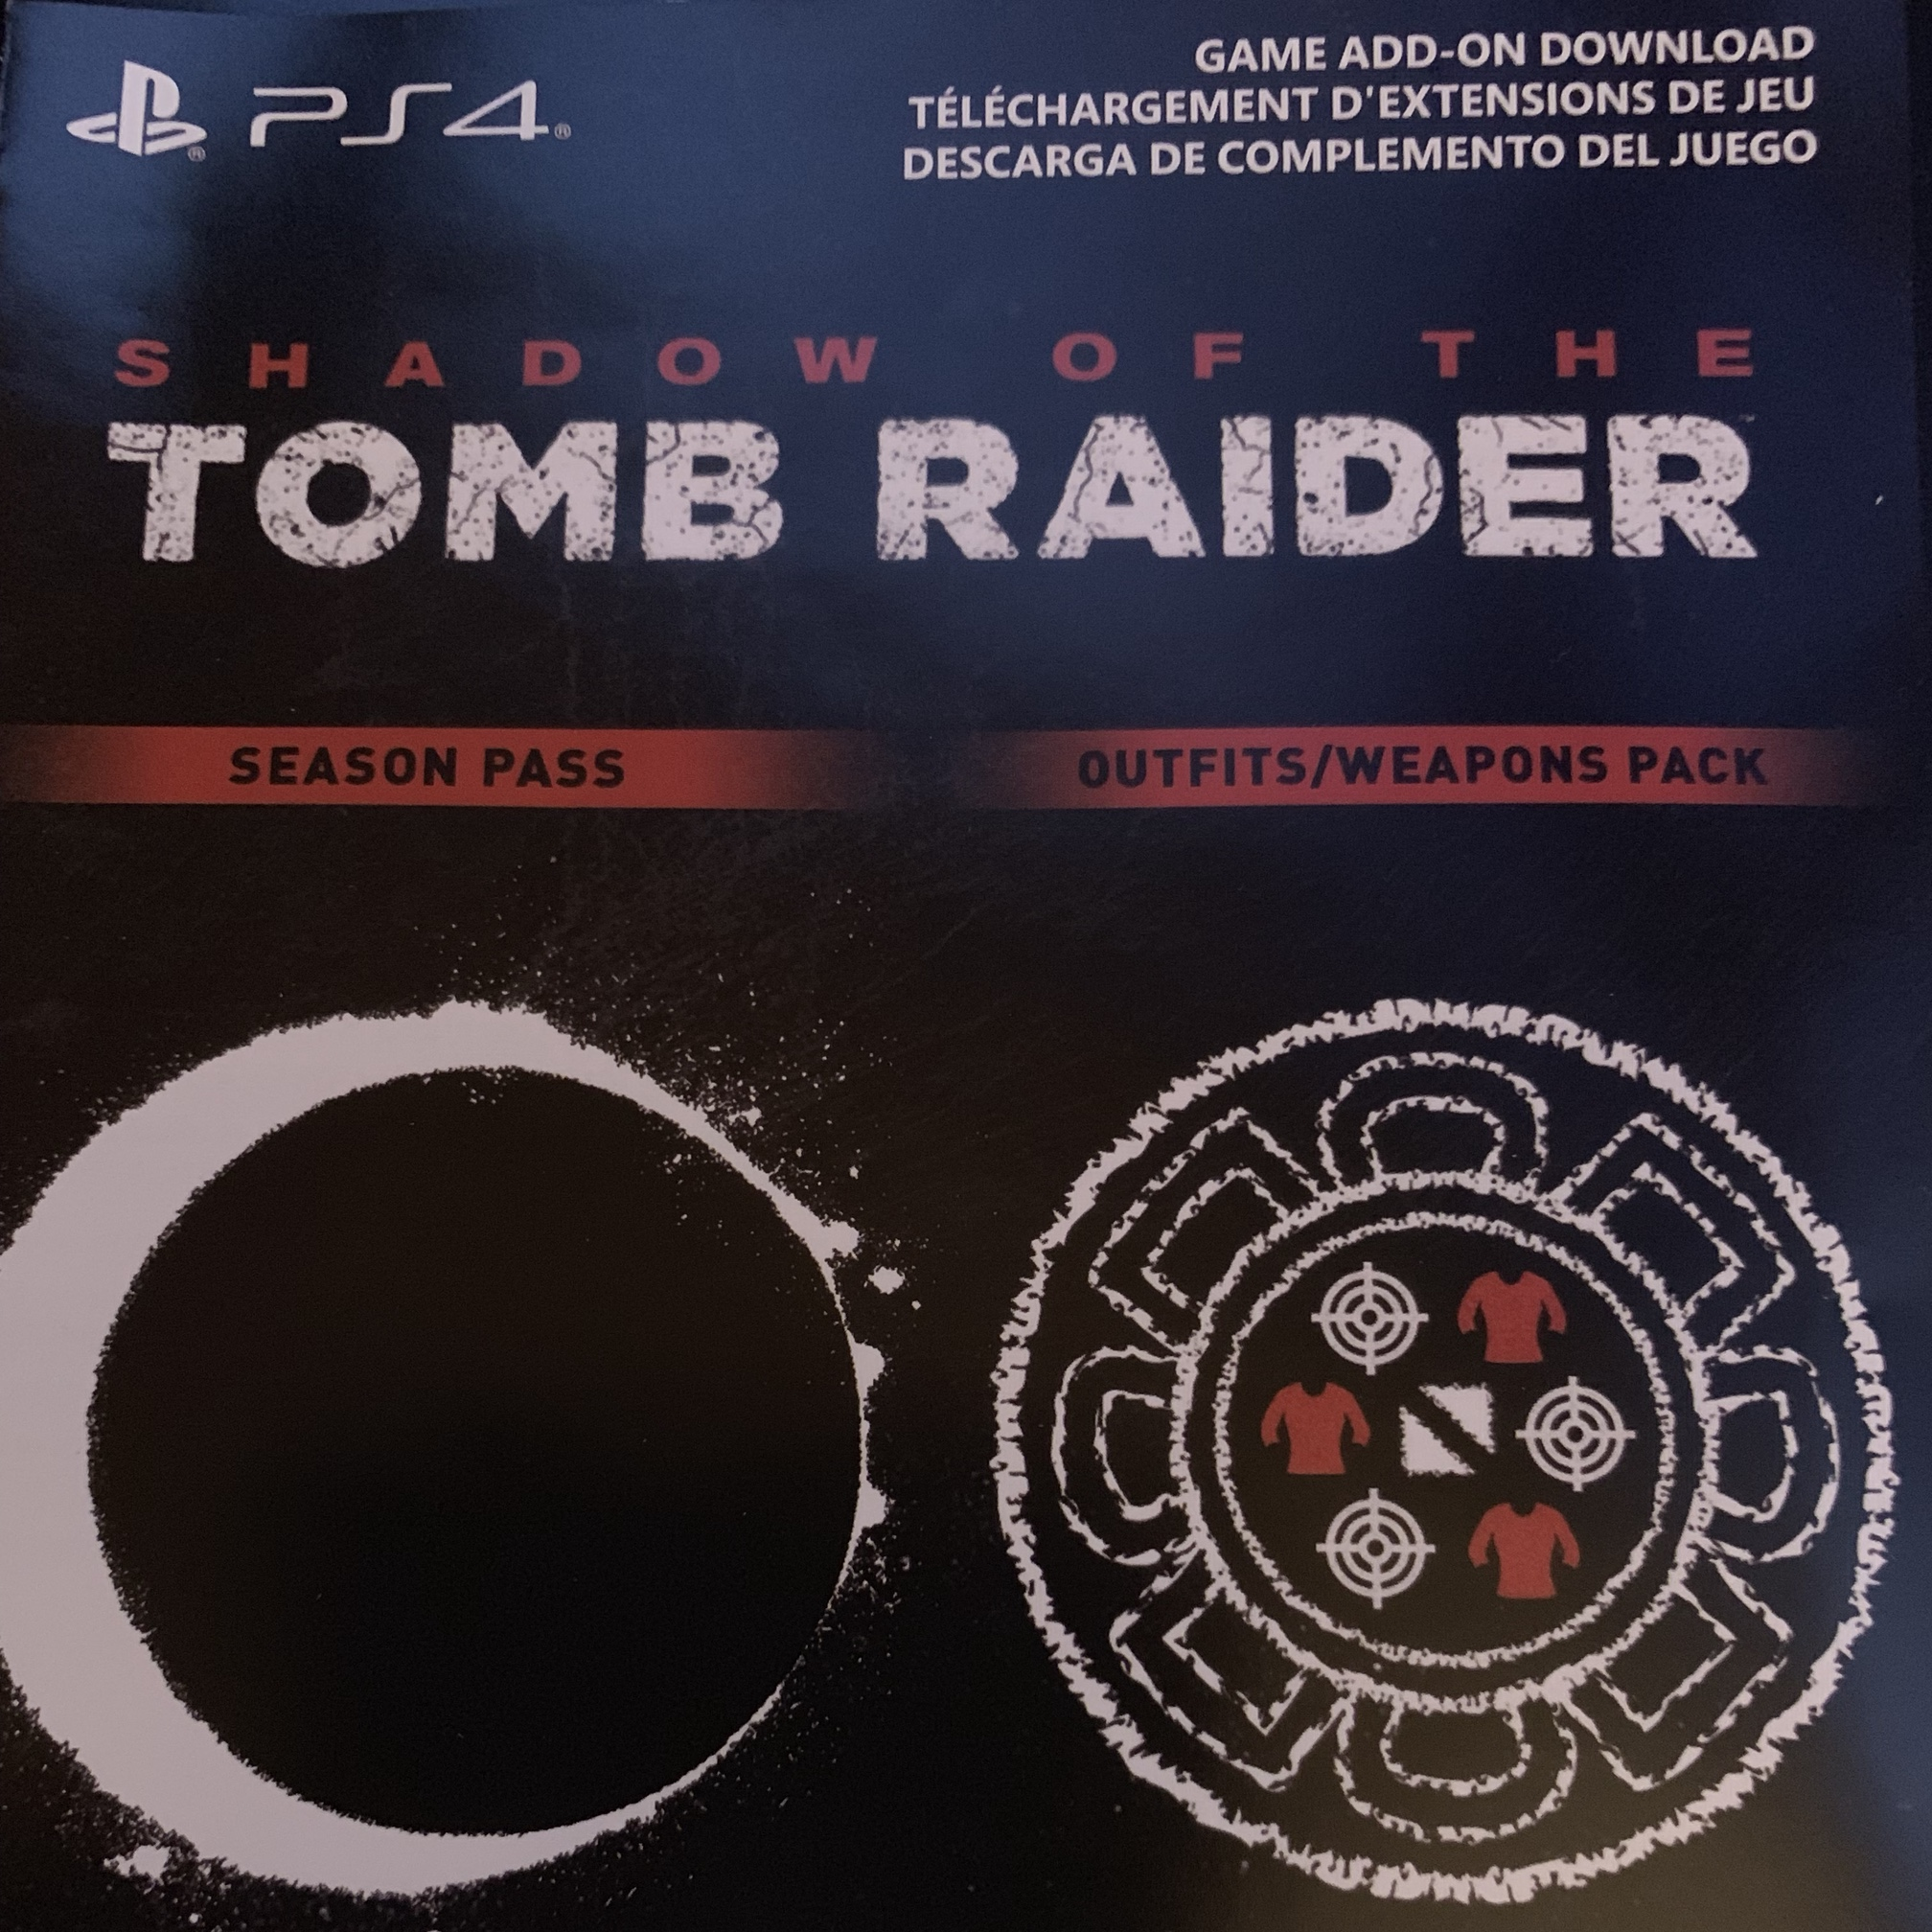 shadow of the tomb raider download code